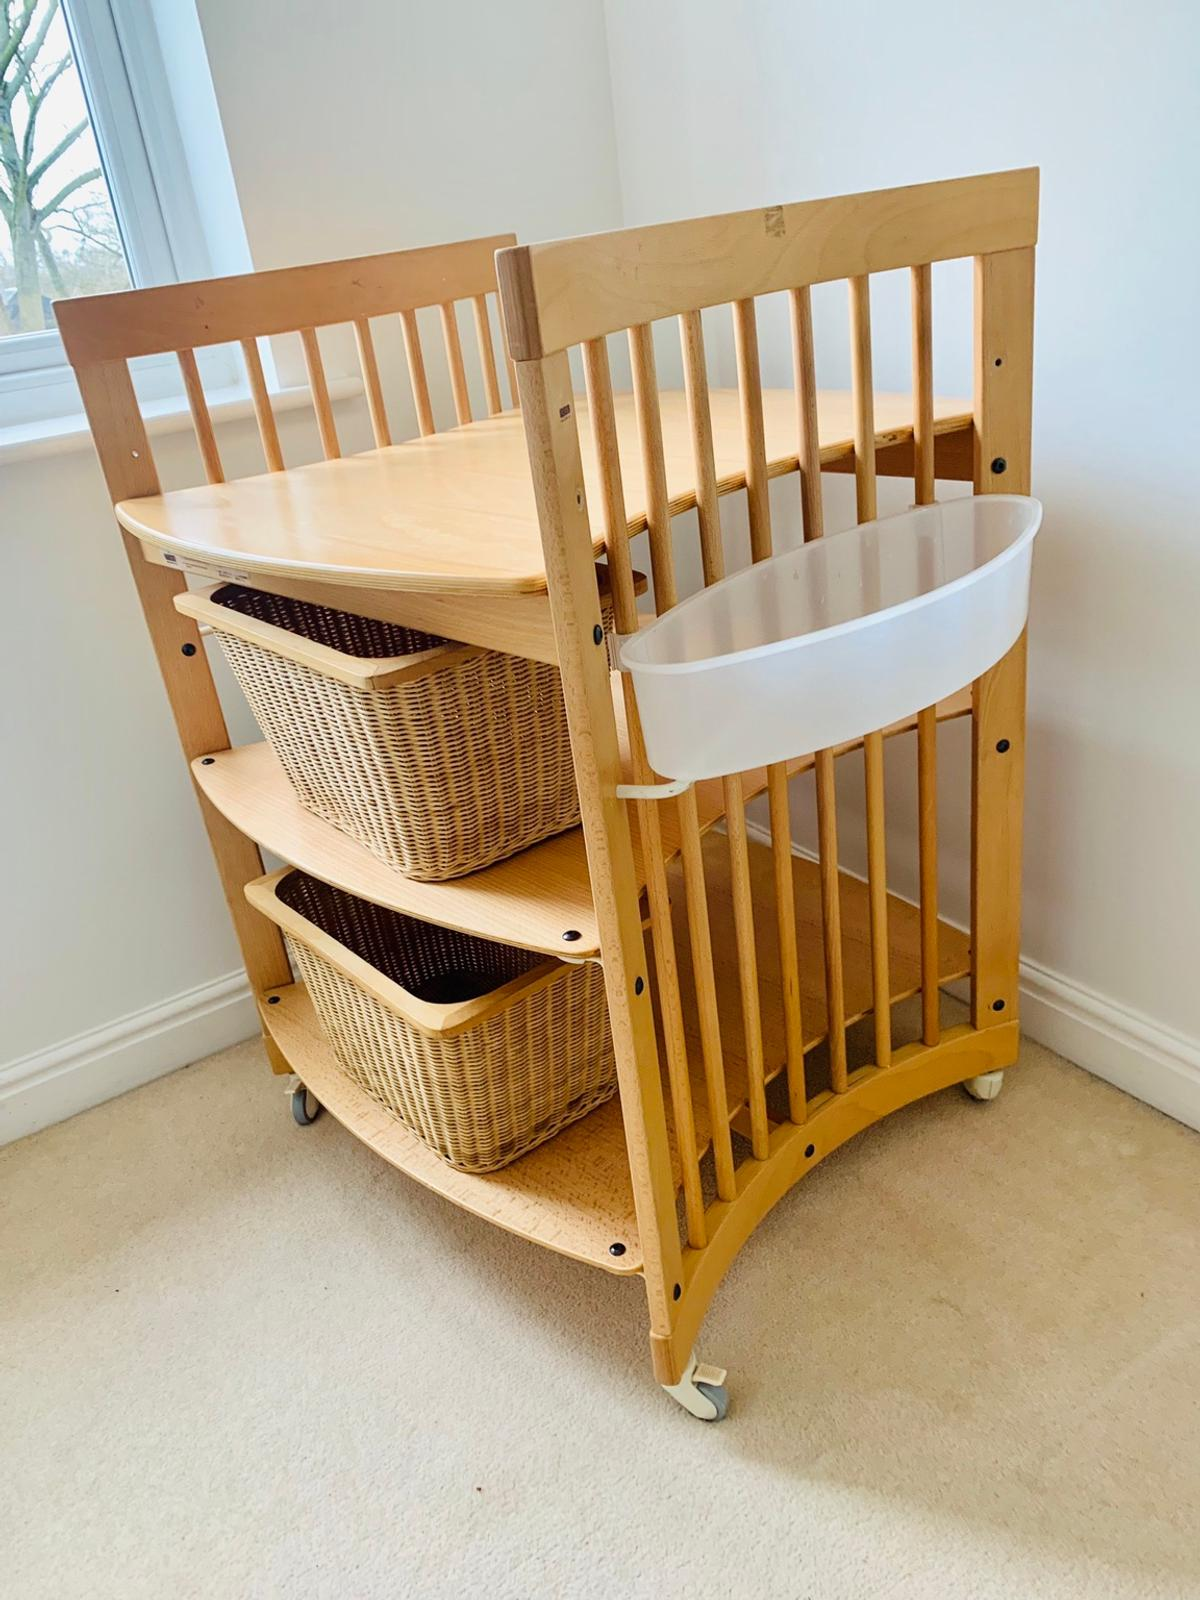 Fabulous Stokke Changing Table In Epping Forest For 30 00 For Sale Download Free Architecture Designs Embacsunscenecom